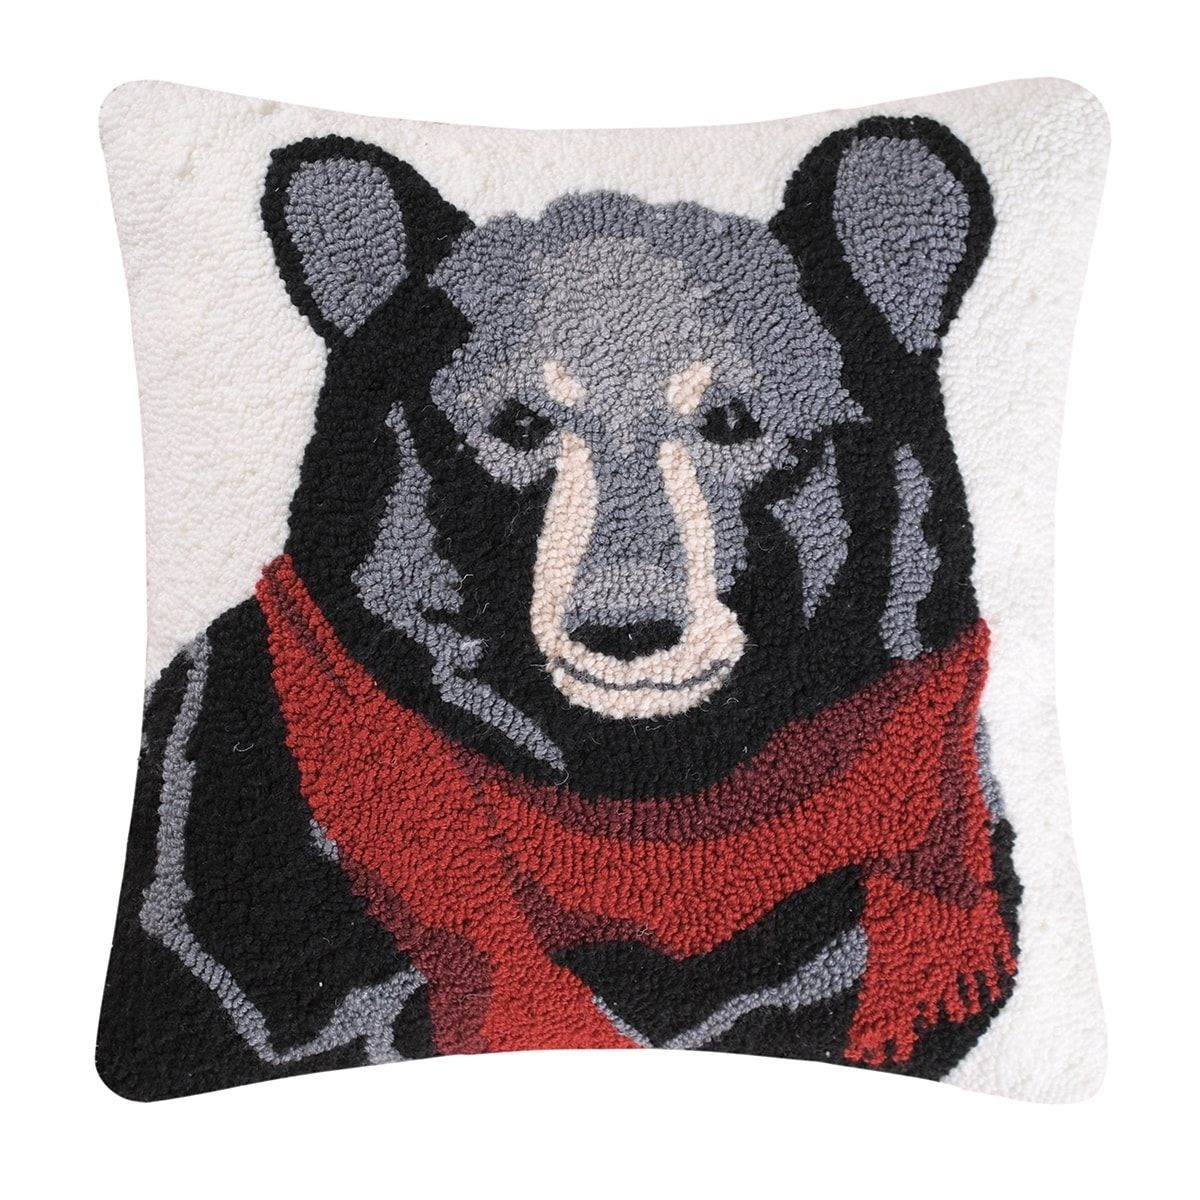 Enterprises Welcome Friends Black Bear Lodge Hooked Pillow 19x19 ...